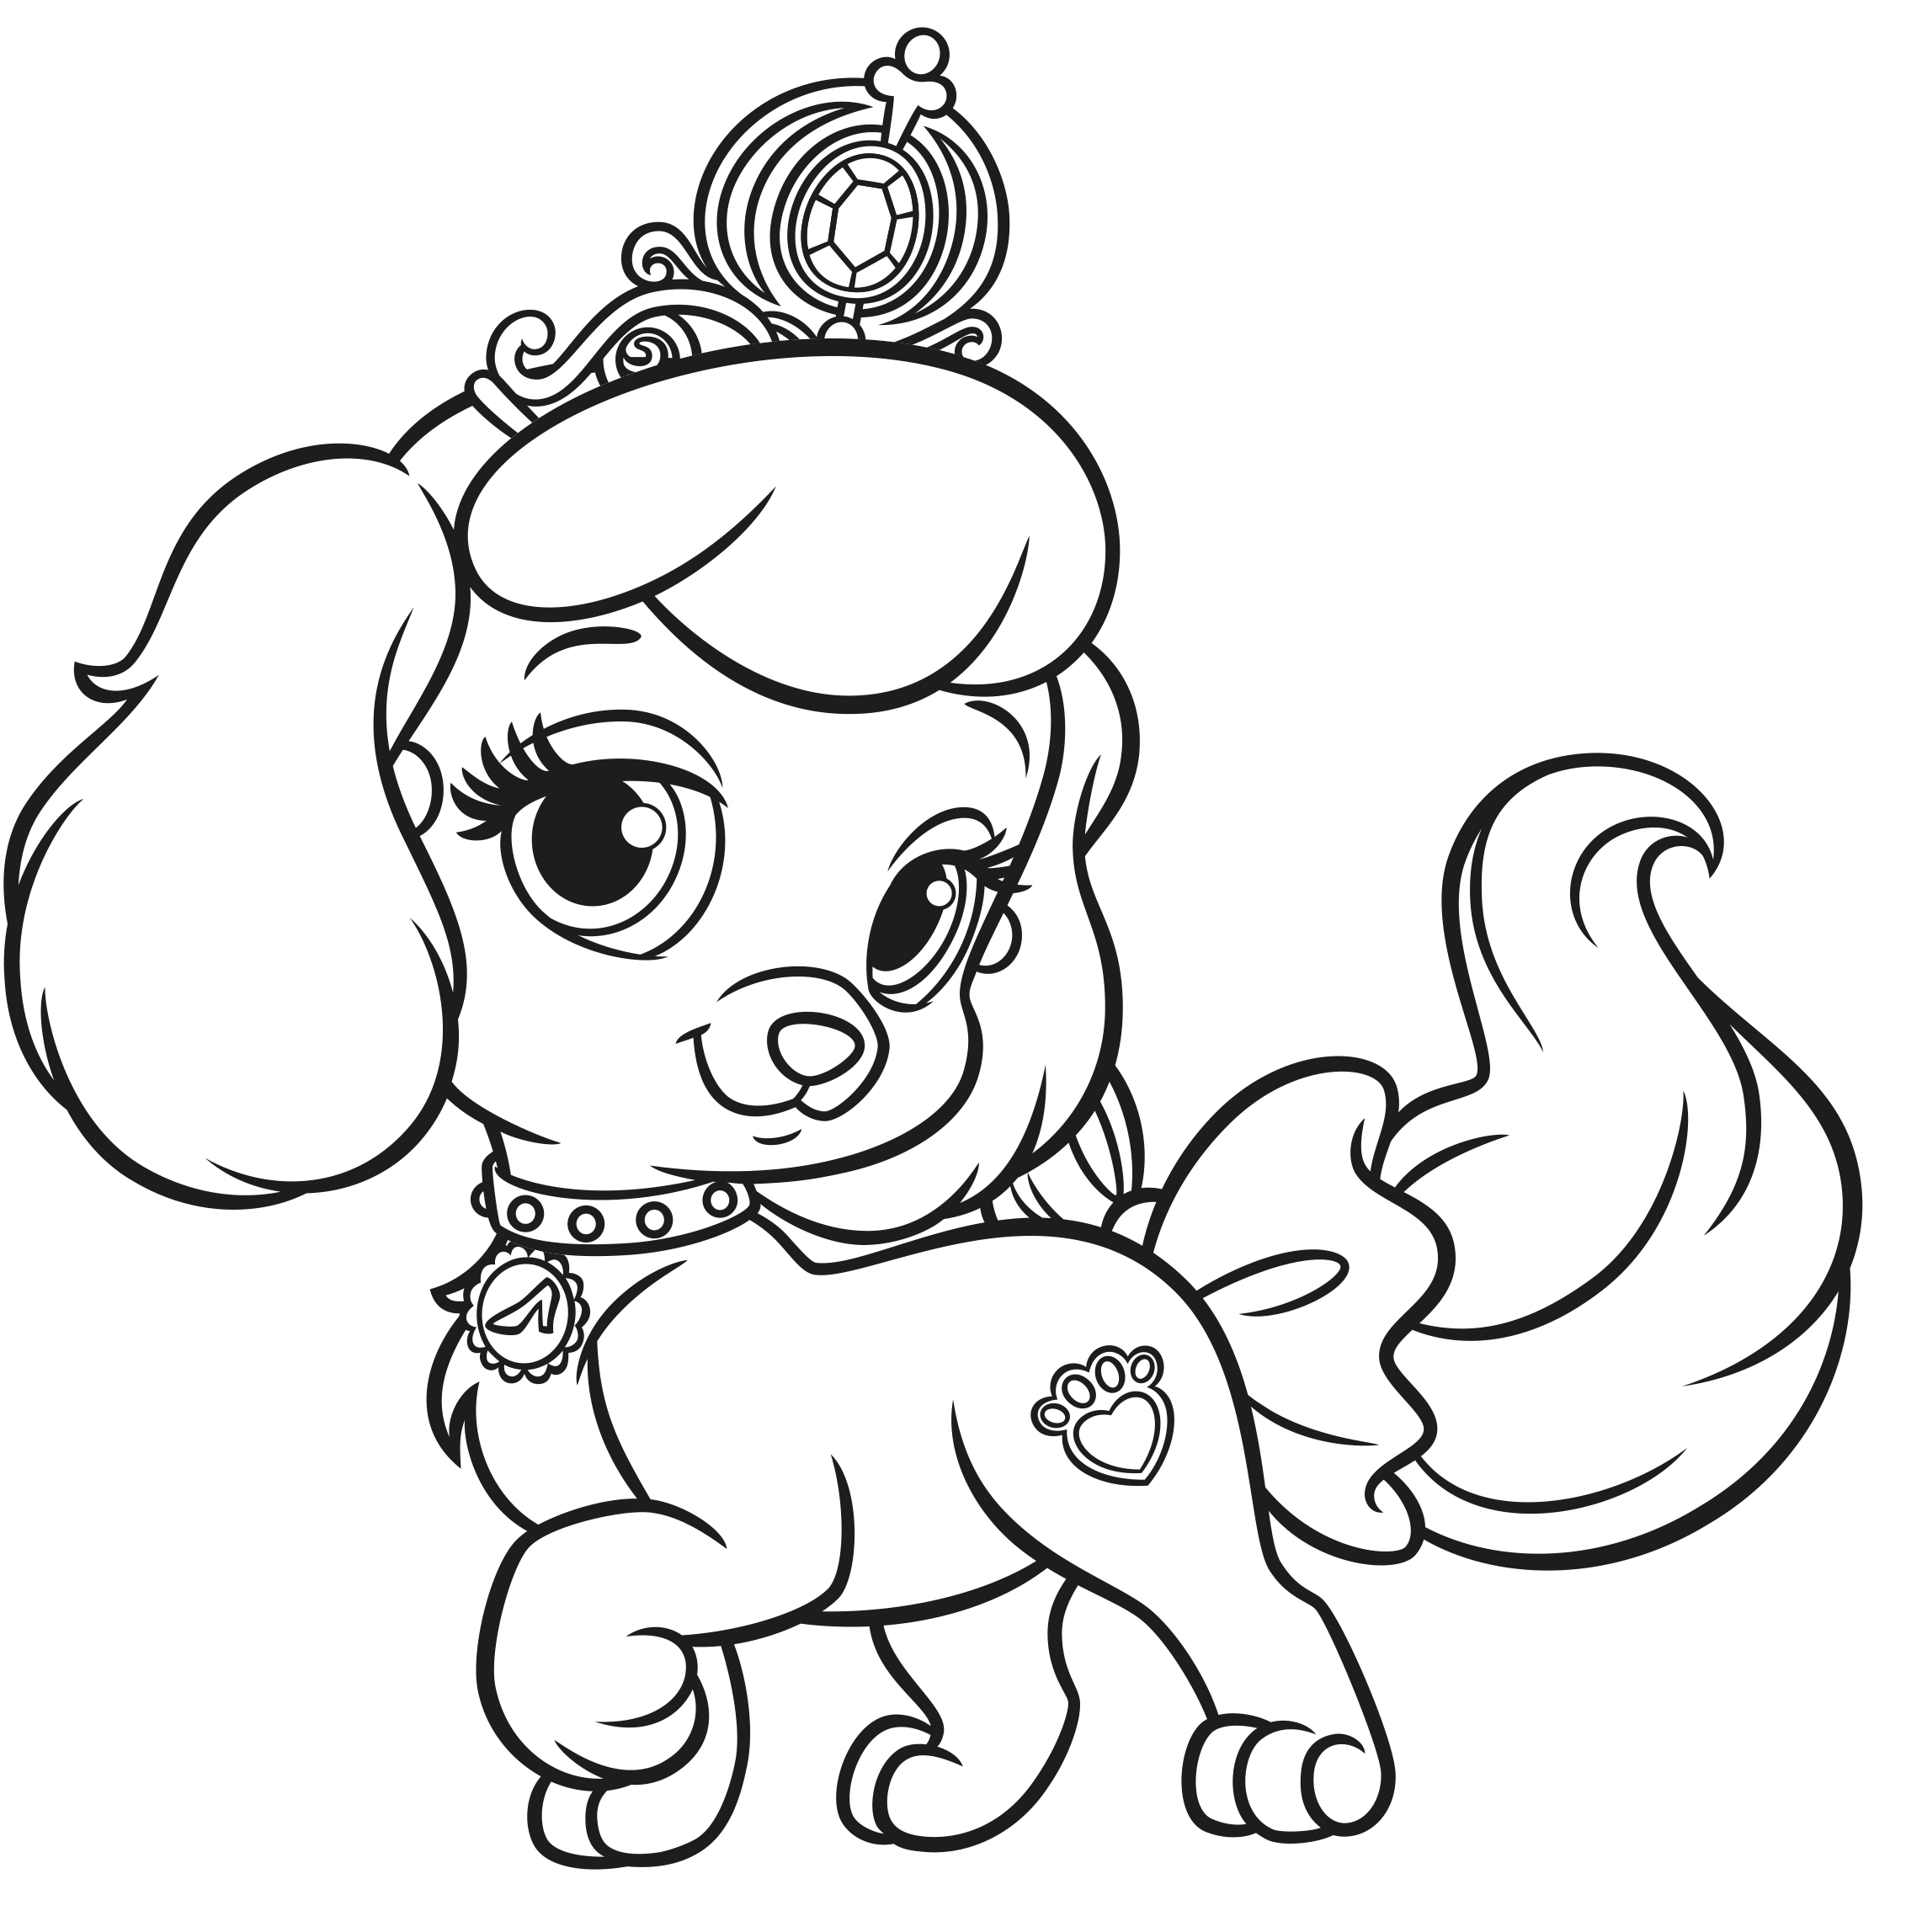 disney pets coloring pages - photo#9